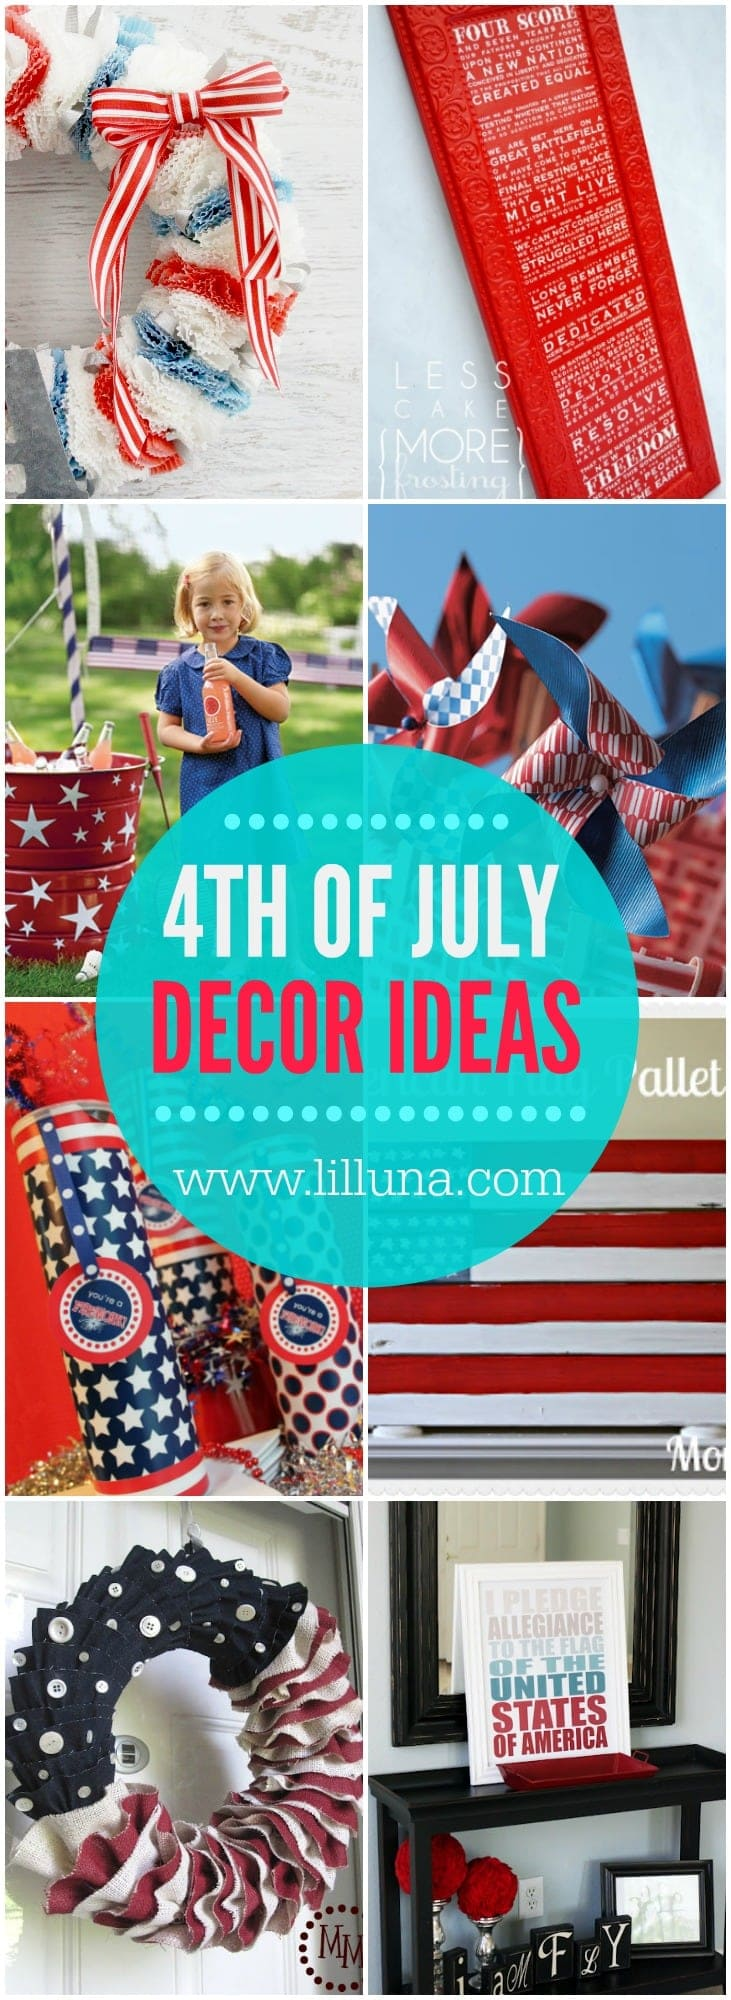 4th of July Decorations - A great collection of red, white and blue decor ideas to help you decorate your home and events this July!